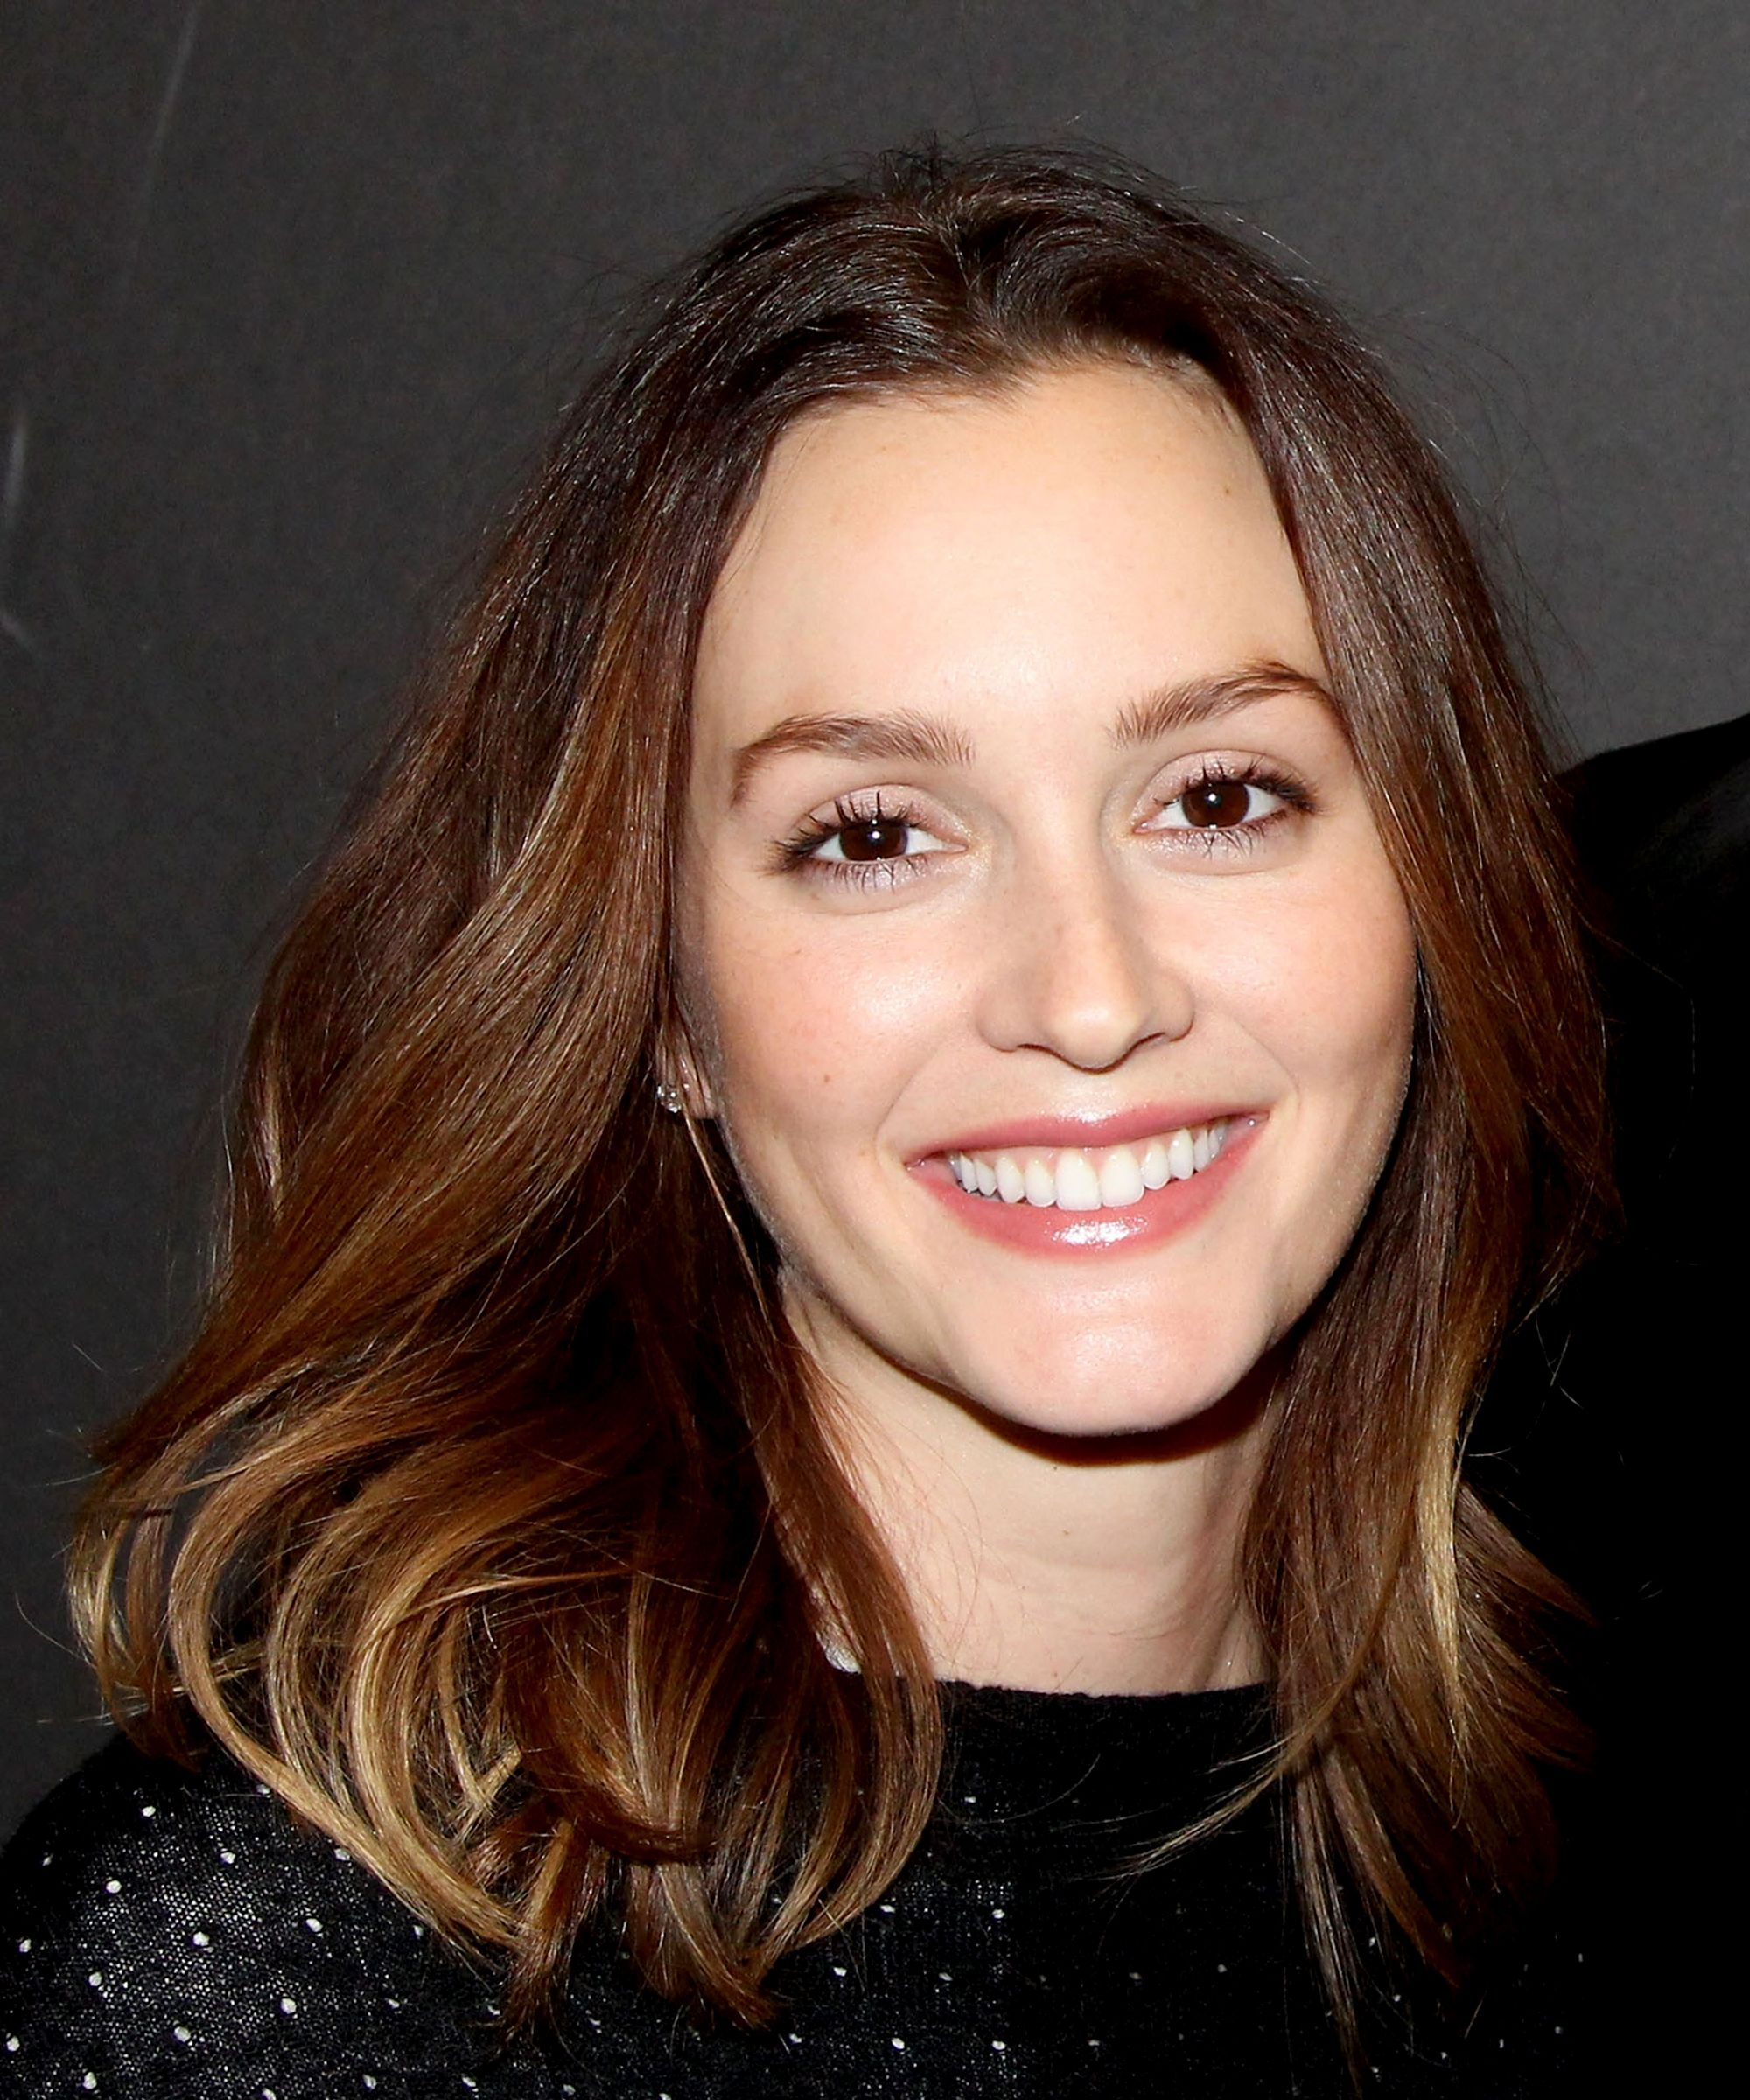 You Won T Believe What Leighton Meester Looked Like Before Gg Refinery29 Https Www R Leighton Meester Hair Going Blonde From Brunette Gossip Girl Hairstyles